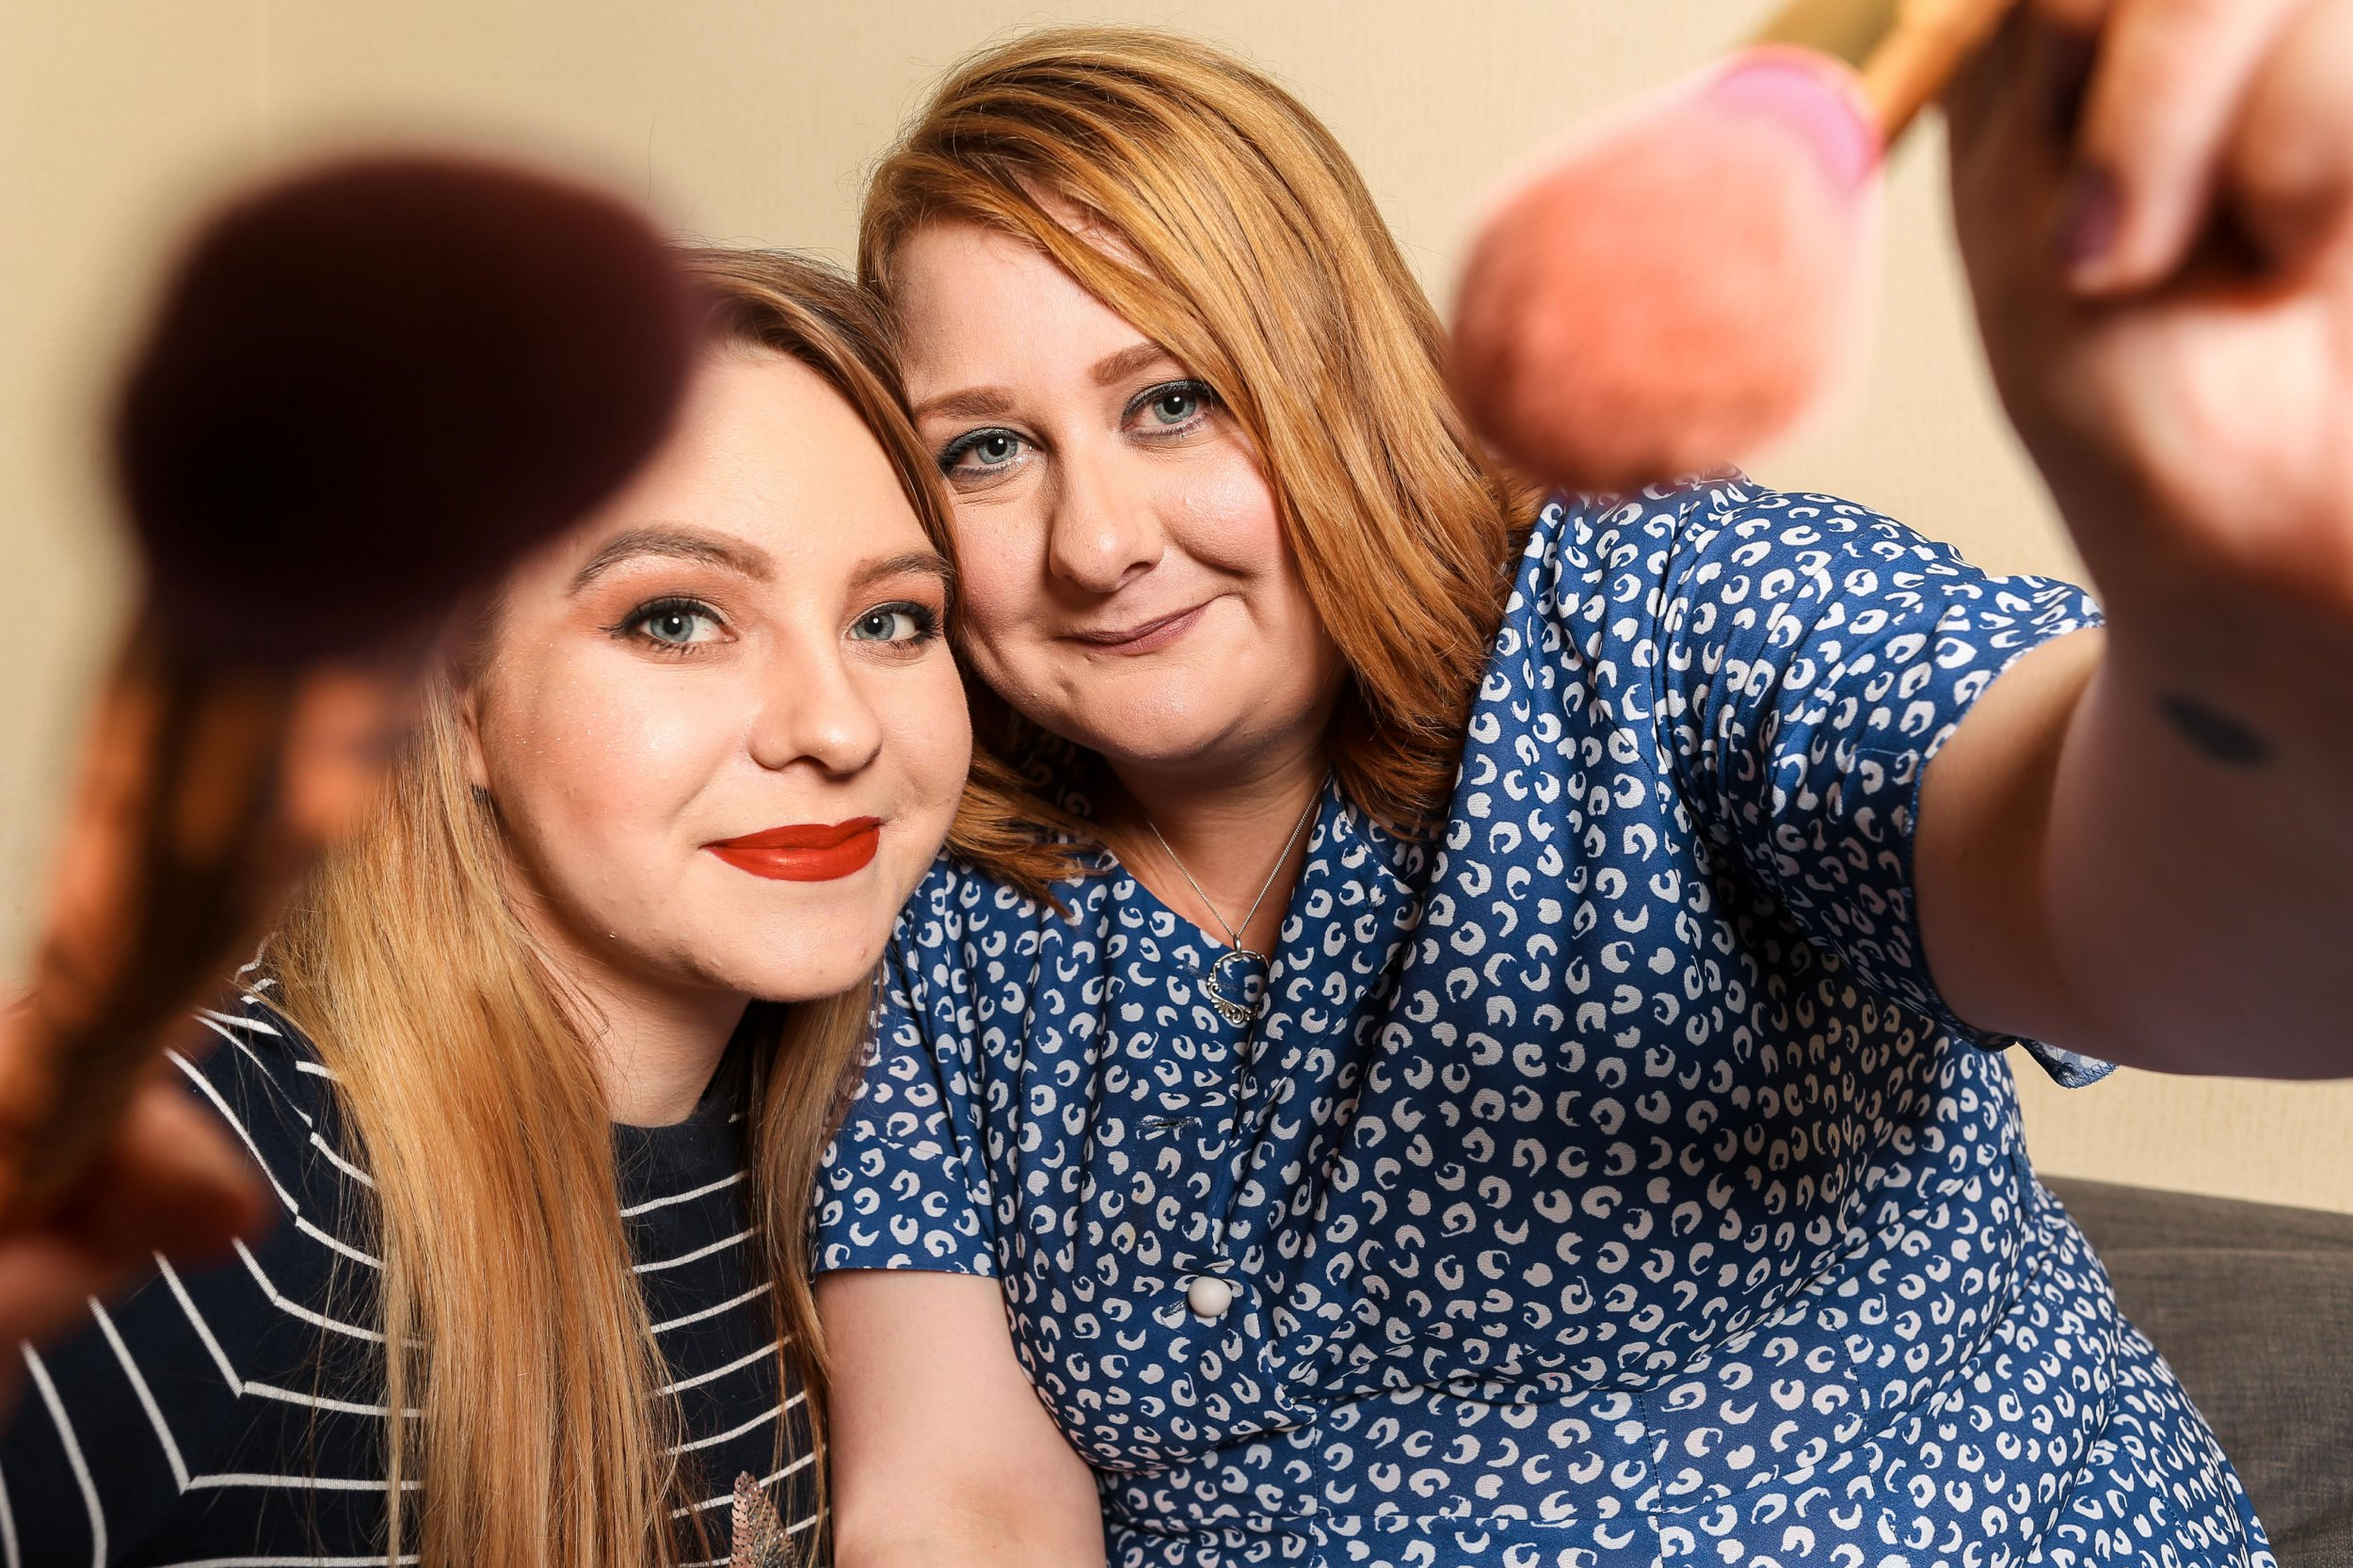 Pics by James Ward/Caters News - (Pictured: Laura Greaves (Blue Dress) and Alex Lucas. Selly Oak, Birmingham. 28/08/2018) - Two blind women have become best friends and now create makeup tutorials together after both losing their sight overnight with no explanation. Laura Greeves, now 26, started losing her sight aged just 24 when in just a matter of days she began to see black spots and her vision became blurred.Doctors were unable to explain the sudden deterioration of her eyesight, which left her unable to work and drive, and she was forced to bring forward her wedding to husband, David, after fears she wouldnt be able to see him on her big day. Laura met 25-year-old Alex Lucas at a support group after learning she had also lost her sight overnight at just 23-years-old and was also left without a reason for her loss of sight. The pair have now gone on to inspire others with make-up and cooking YouTube tutorials and even run a weekly podcast to help other blind and partially sighted people, called suddenly sightless. Mum-of-one Laura, a former administrator from Selly Oak, Birmingham, said: I had to accept that I was never going to know why I had lost my sight and also my independence. SEE CATERS COPY.